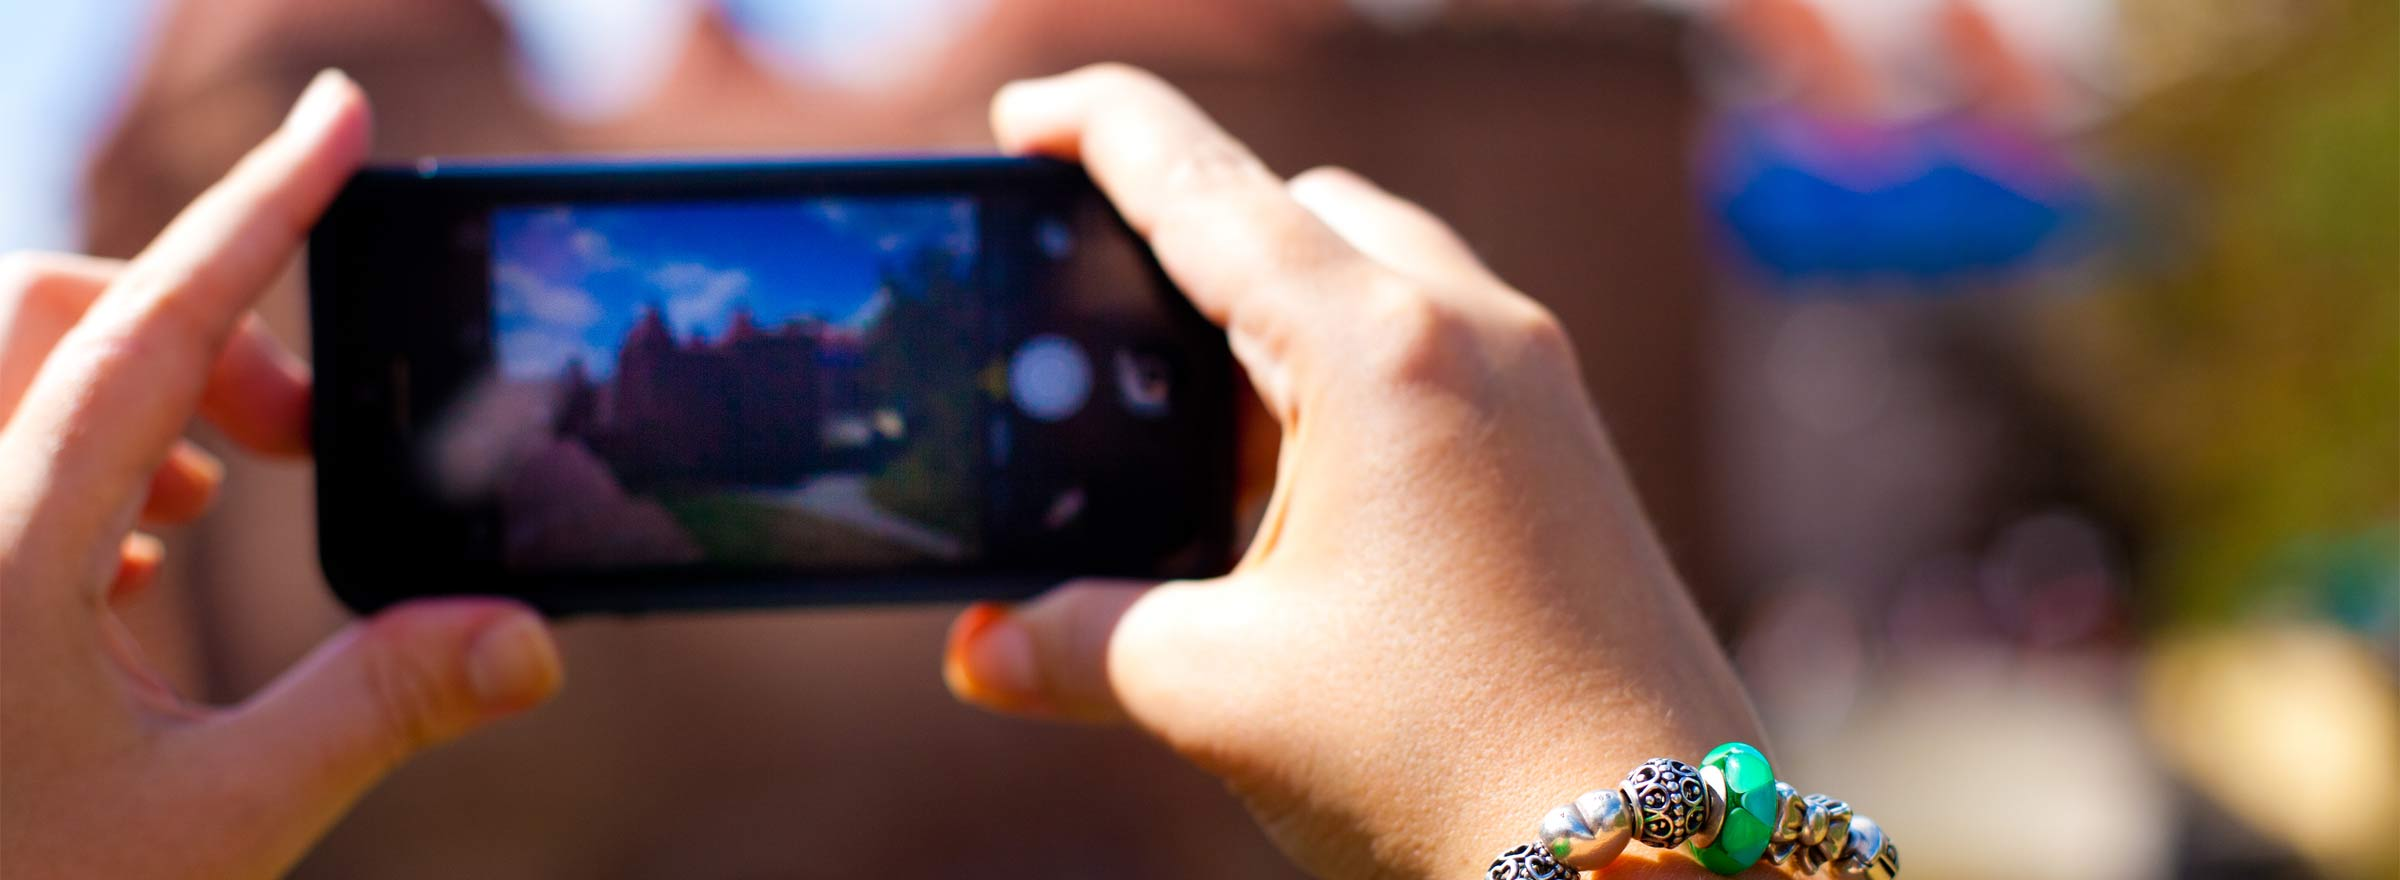 hands of a woman recording a video with a smartphone